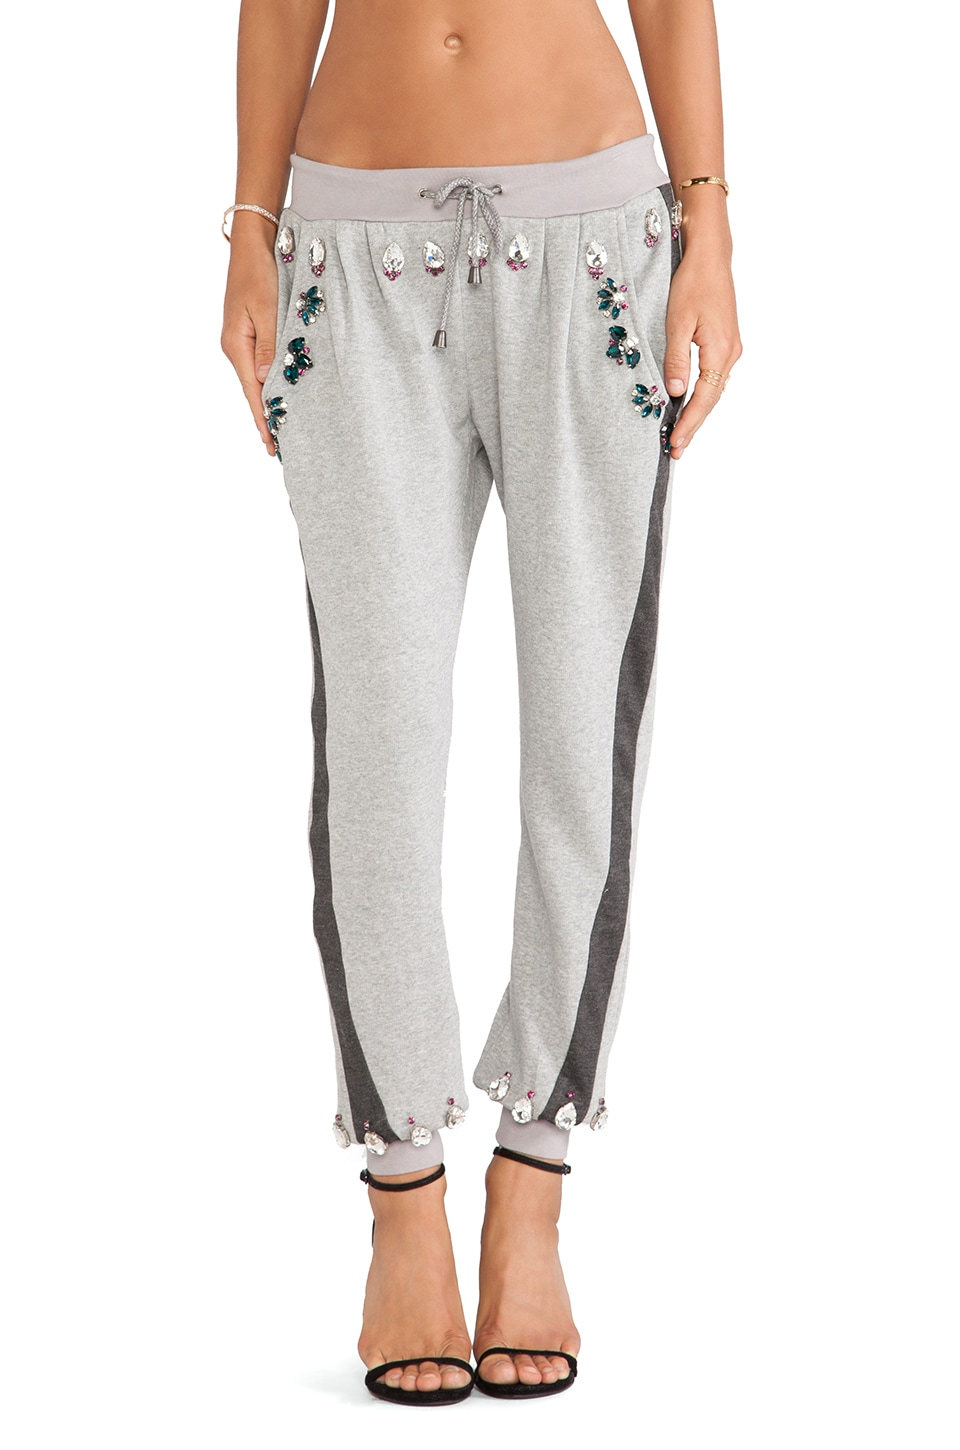 HEMANT AND NANDITA Crystal Sweatpant in Light & Dark Grey